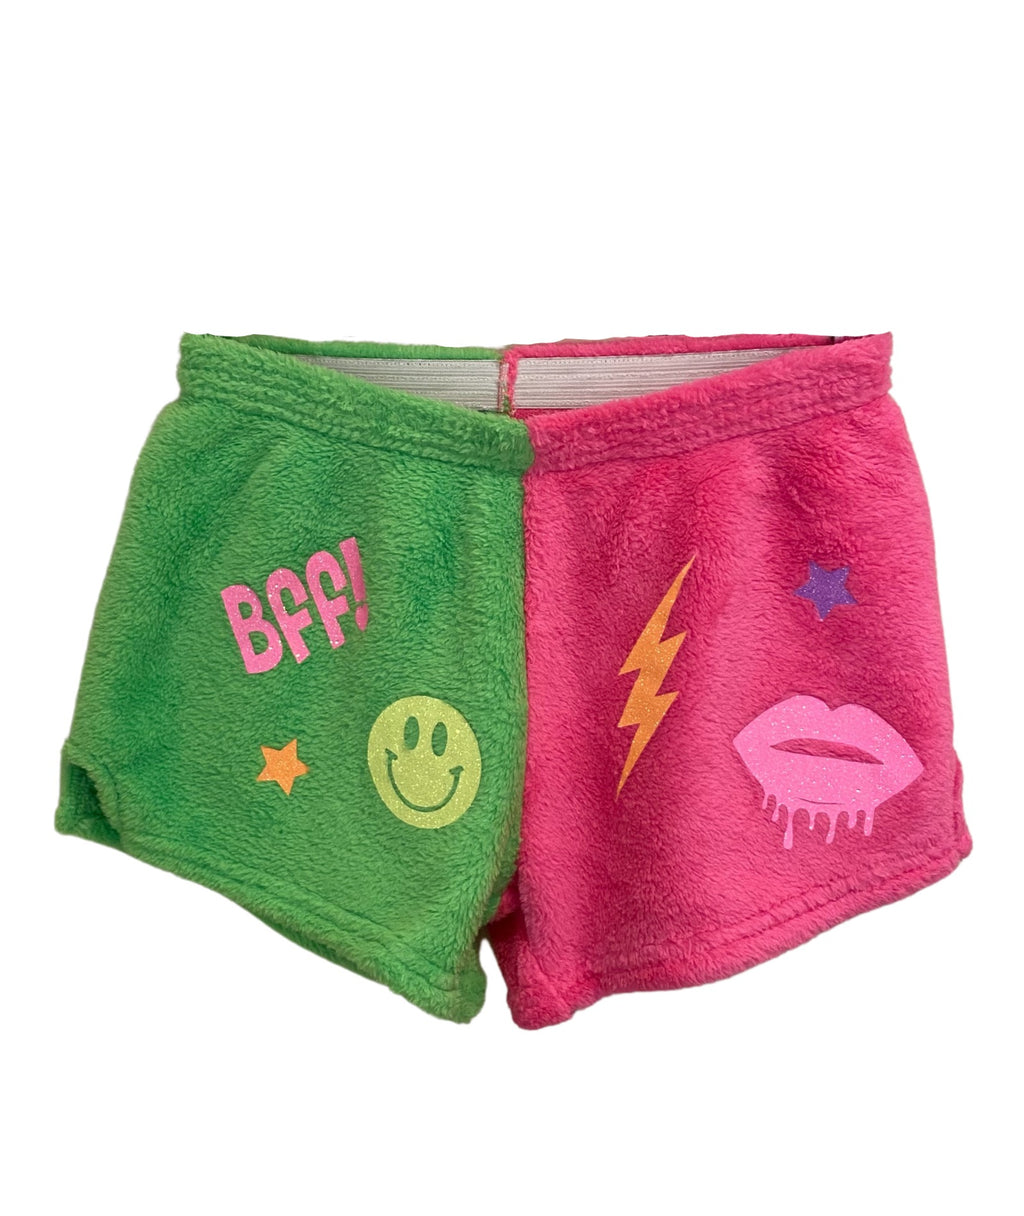 Made with Love and Kisses Girls Neon Pink/Green Fun Stuff Shorts